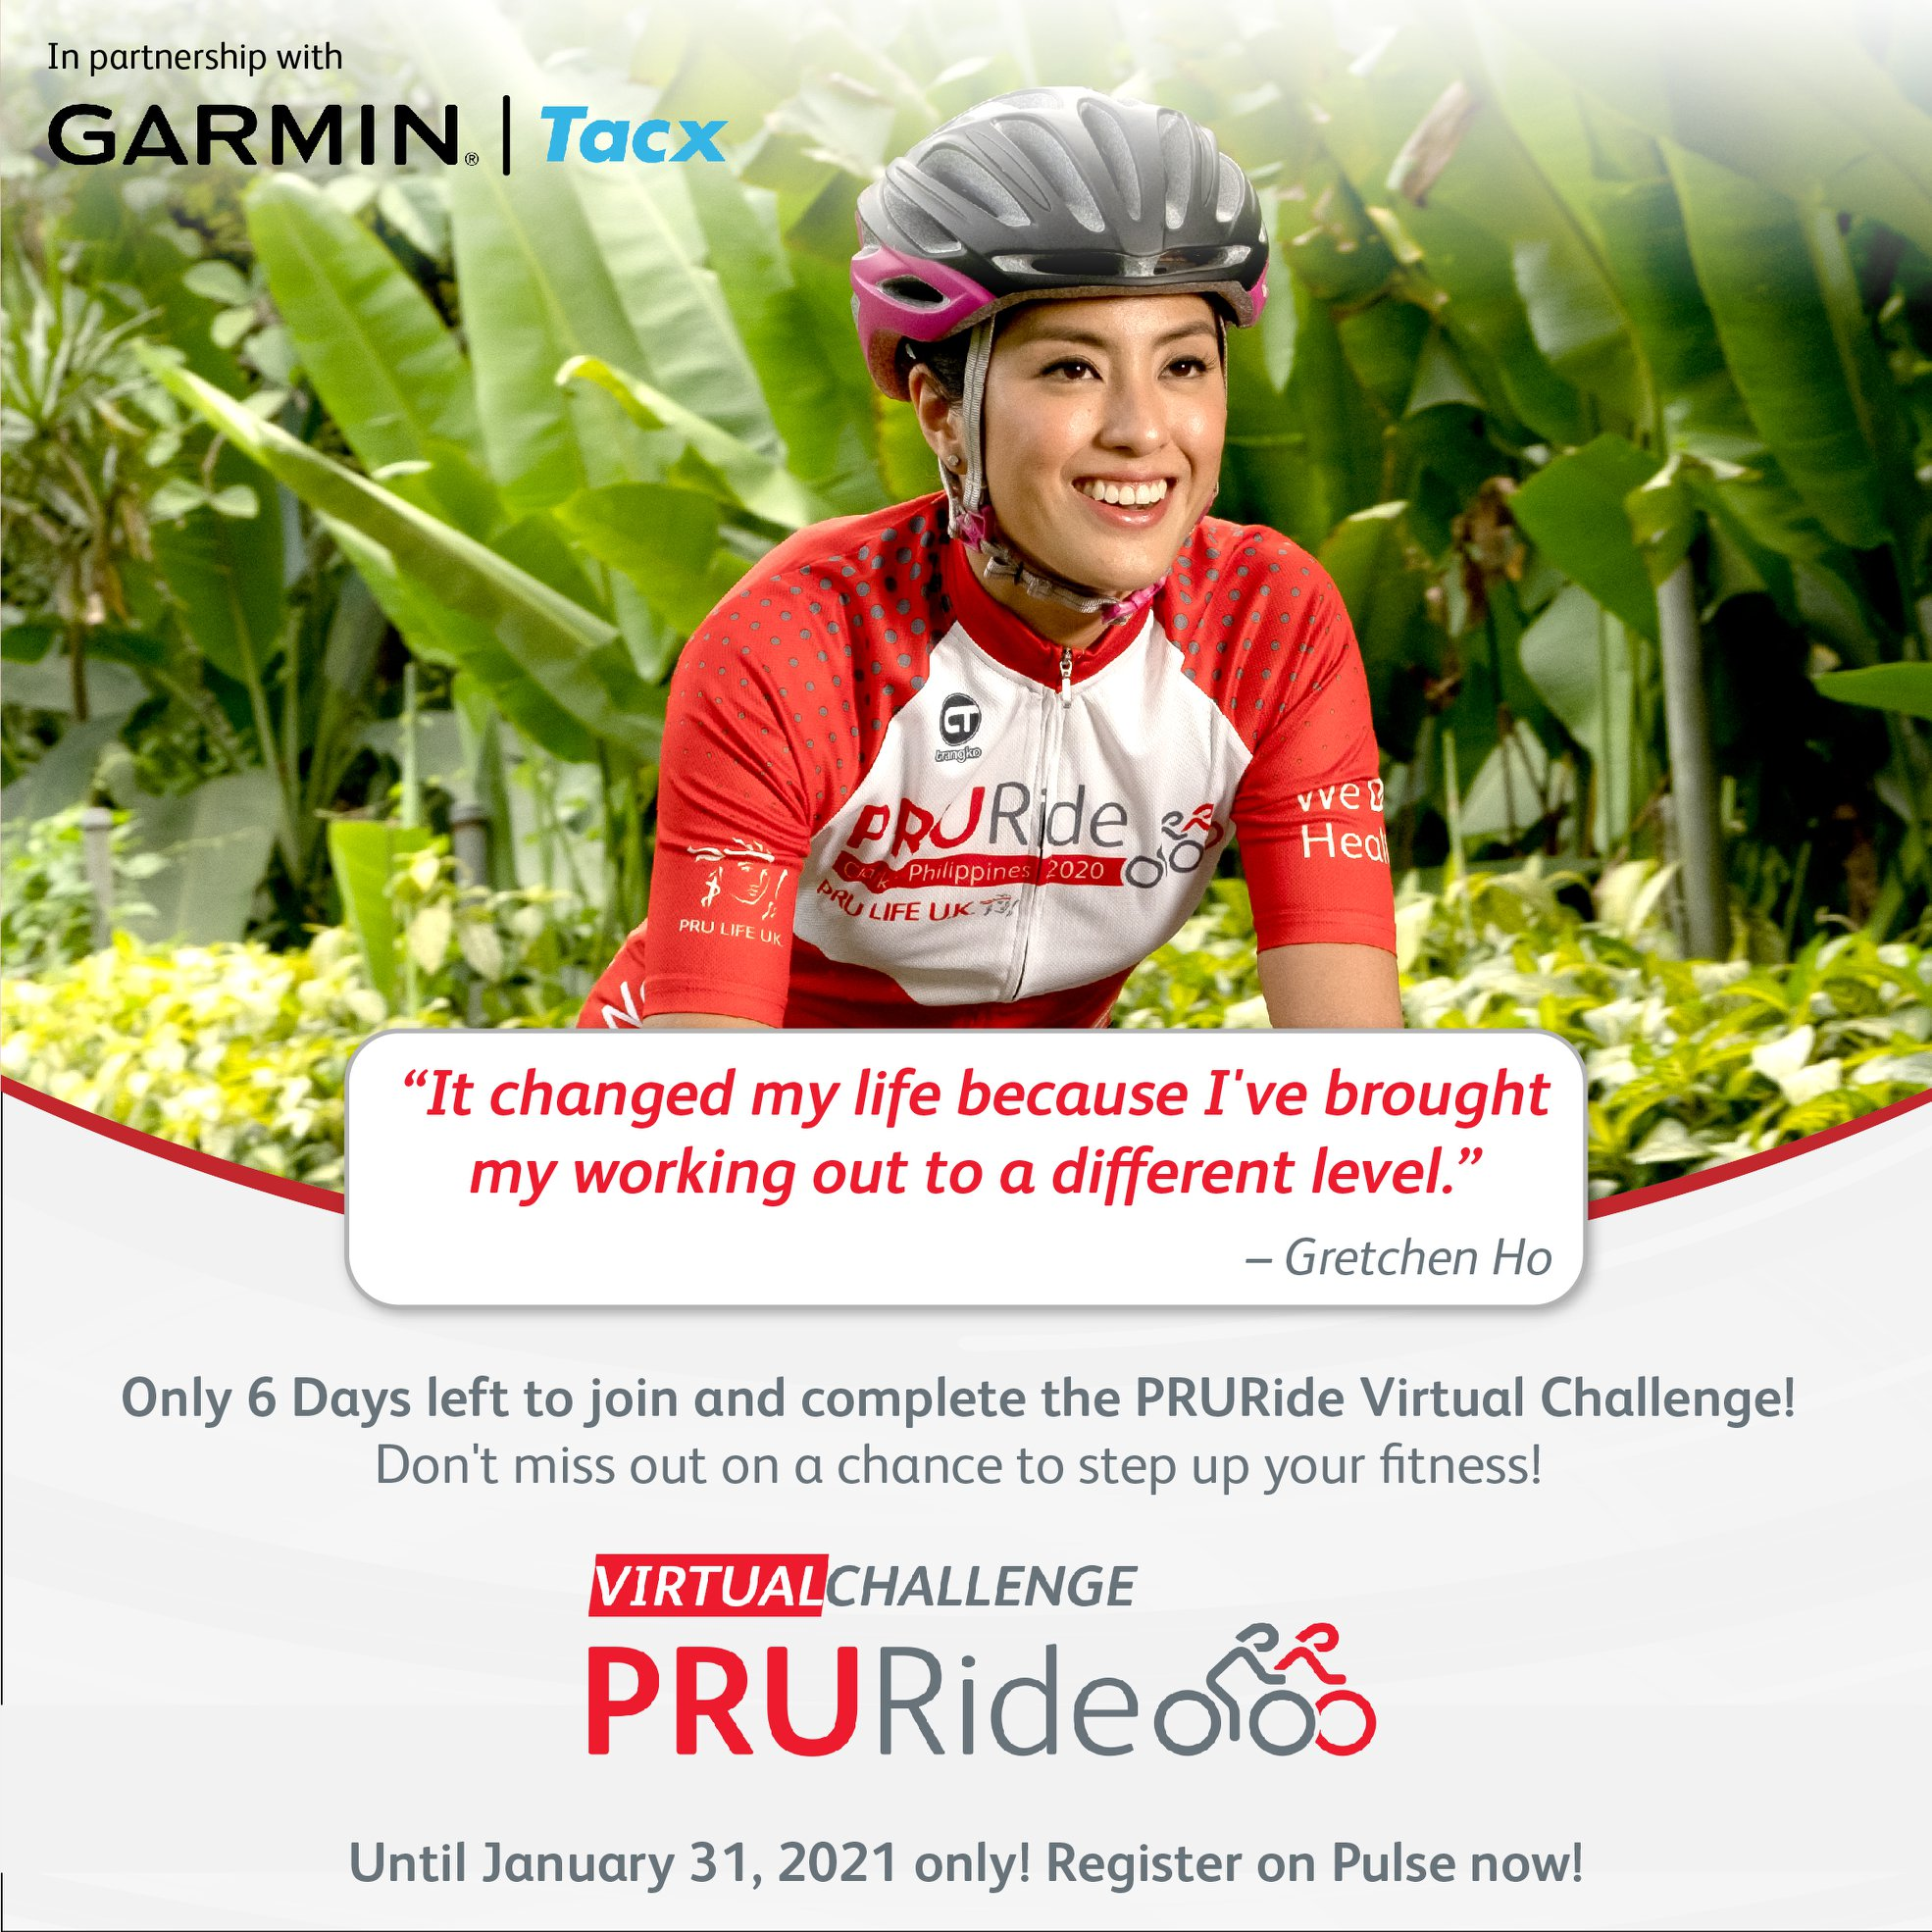 Only 5 days to go! Over 5,000 prizes up for grabs!  Experience a fun and exciting cycling experience with your family and friends in the PRURide Virtual Challenge